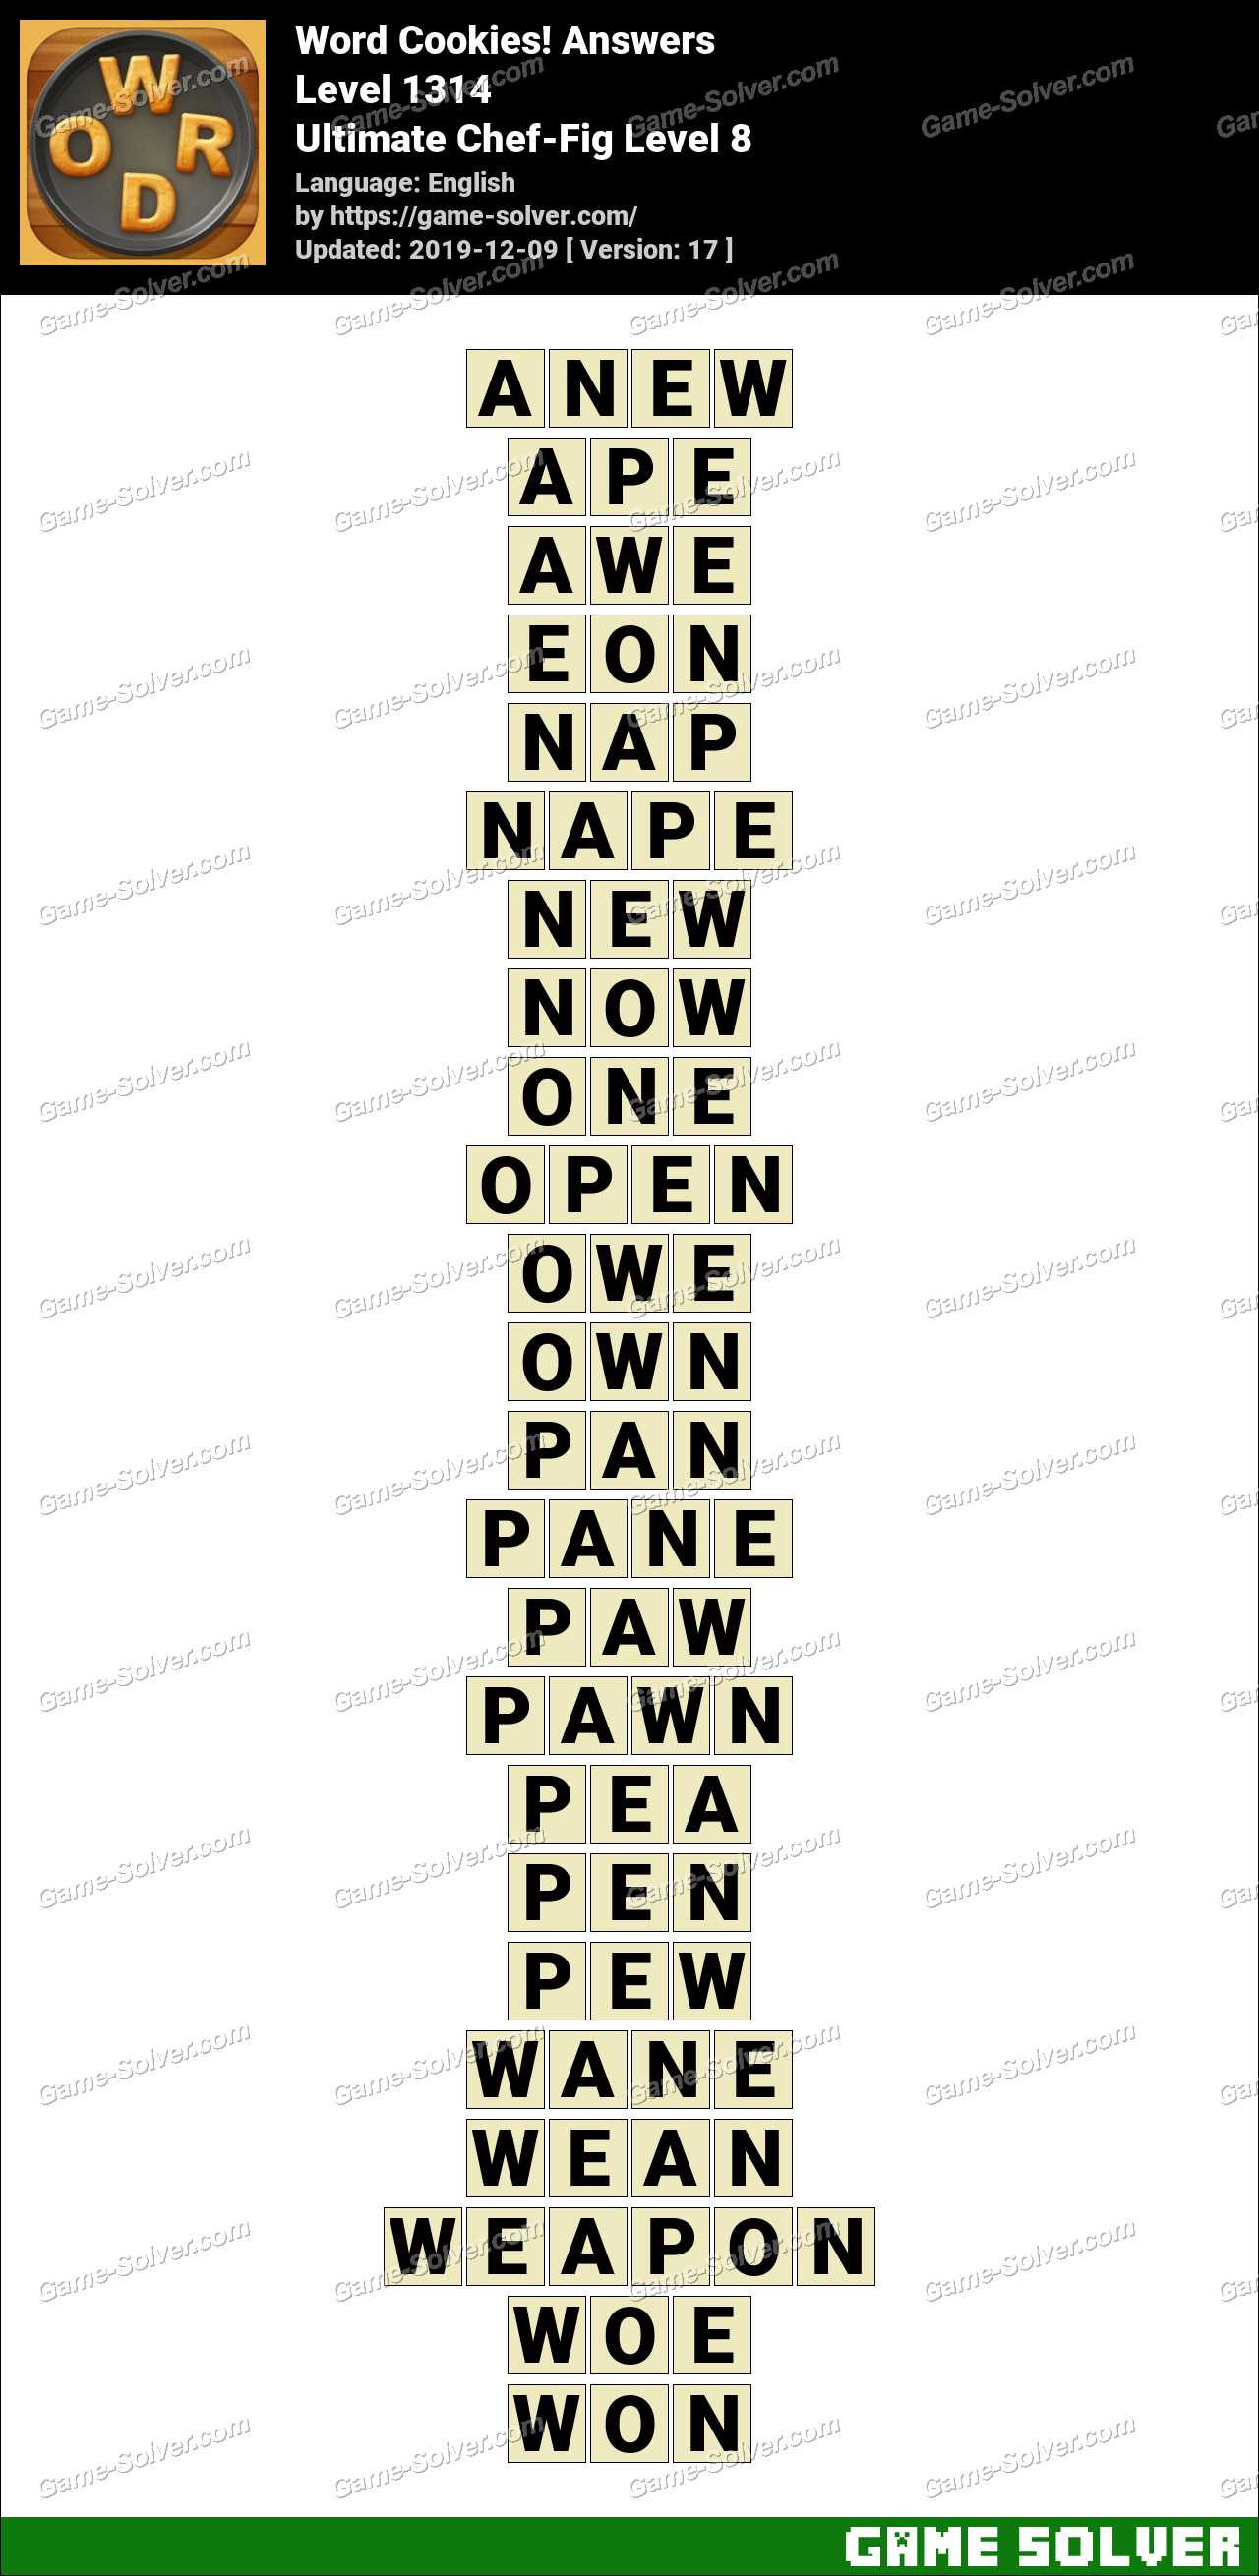 Word Cookies Ultimate Chef-Fig Level 8 Answers